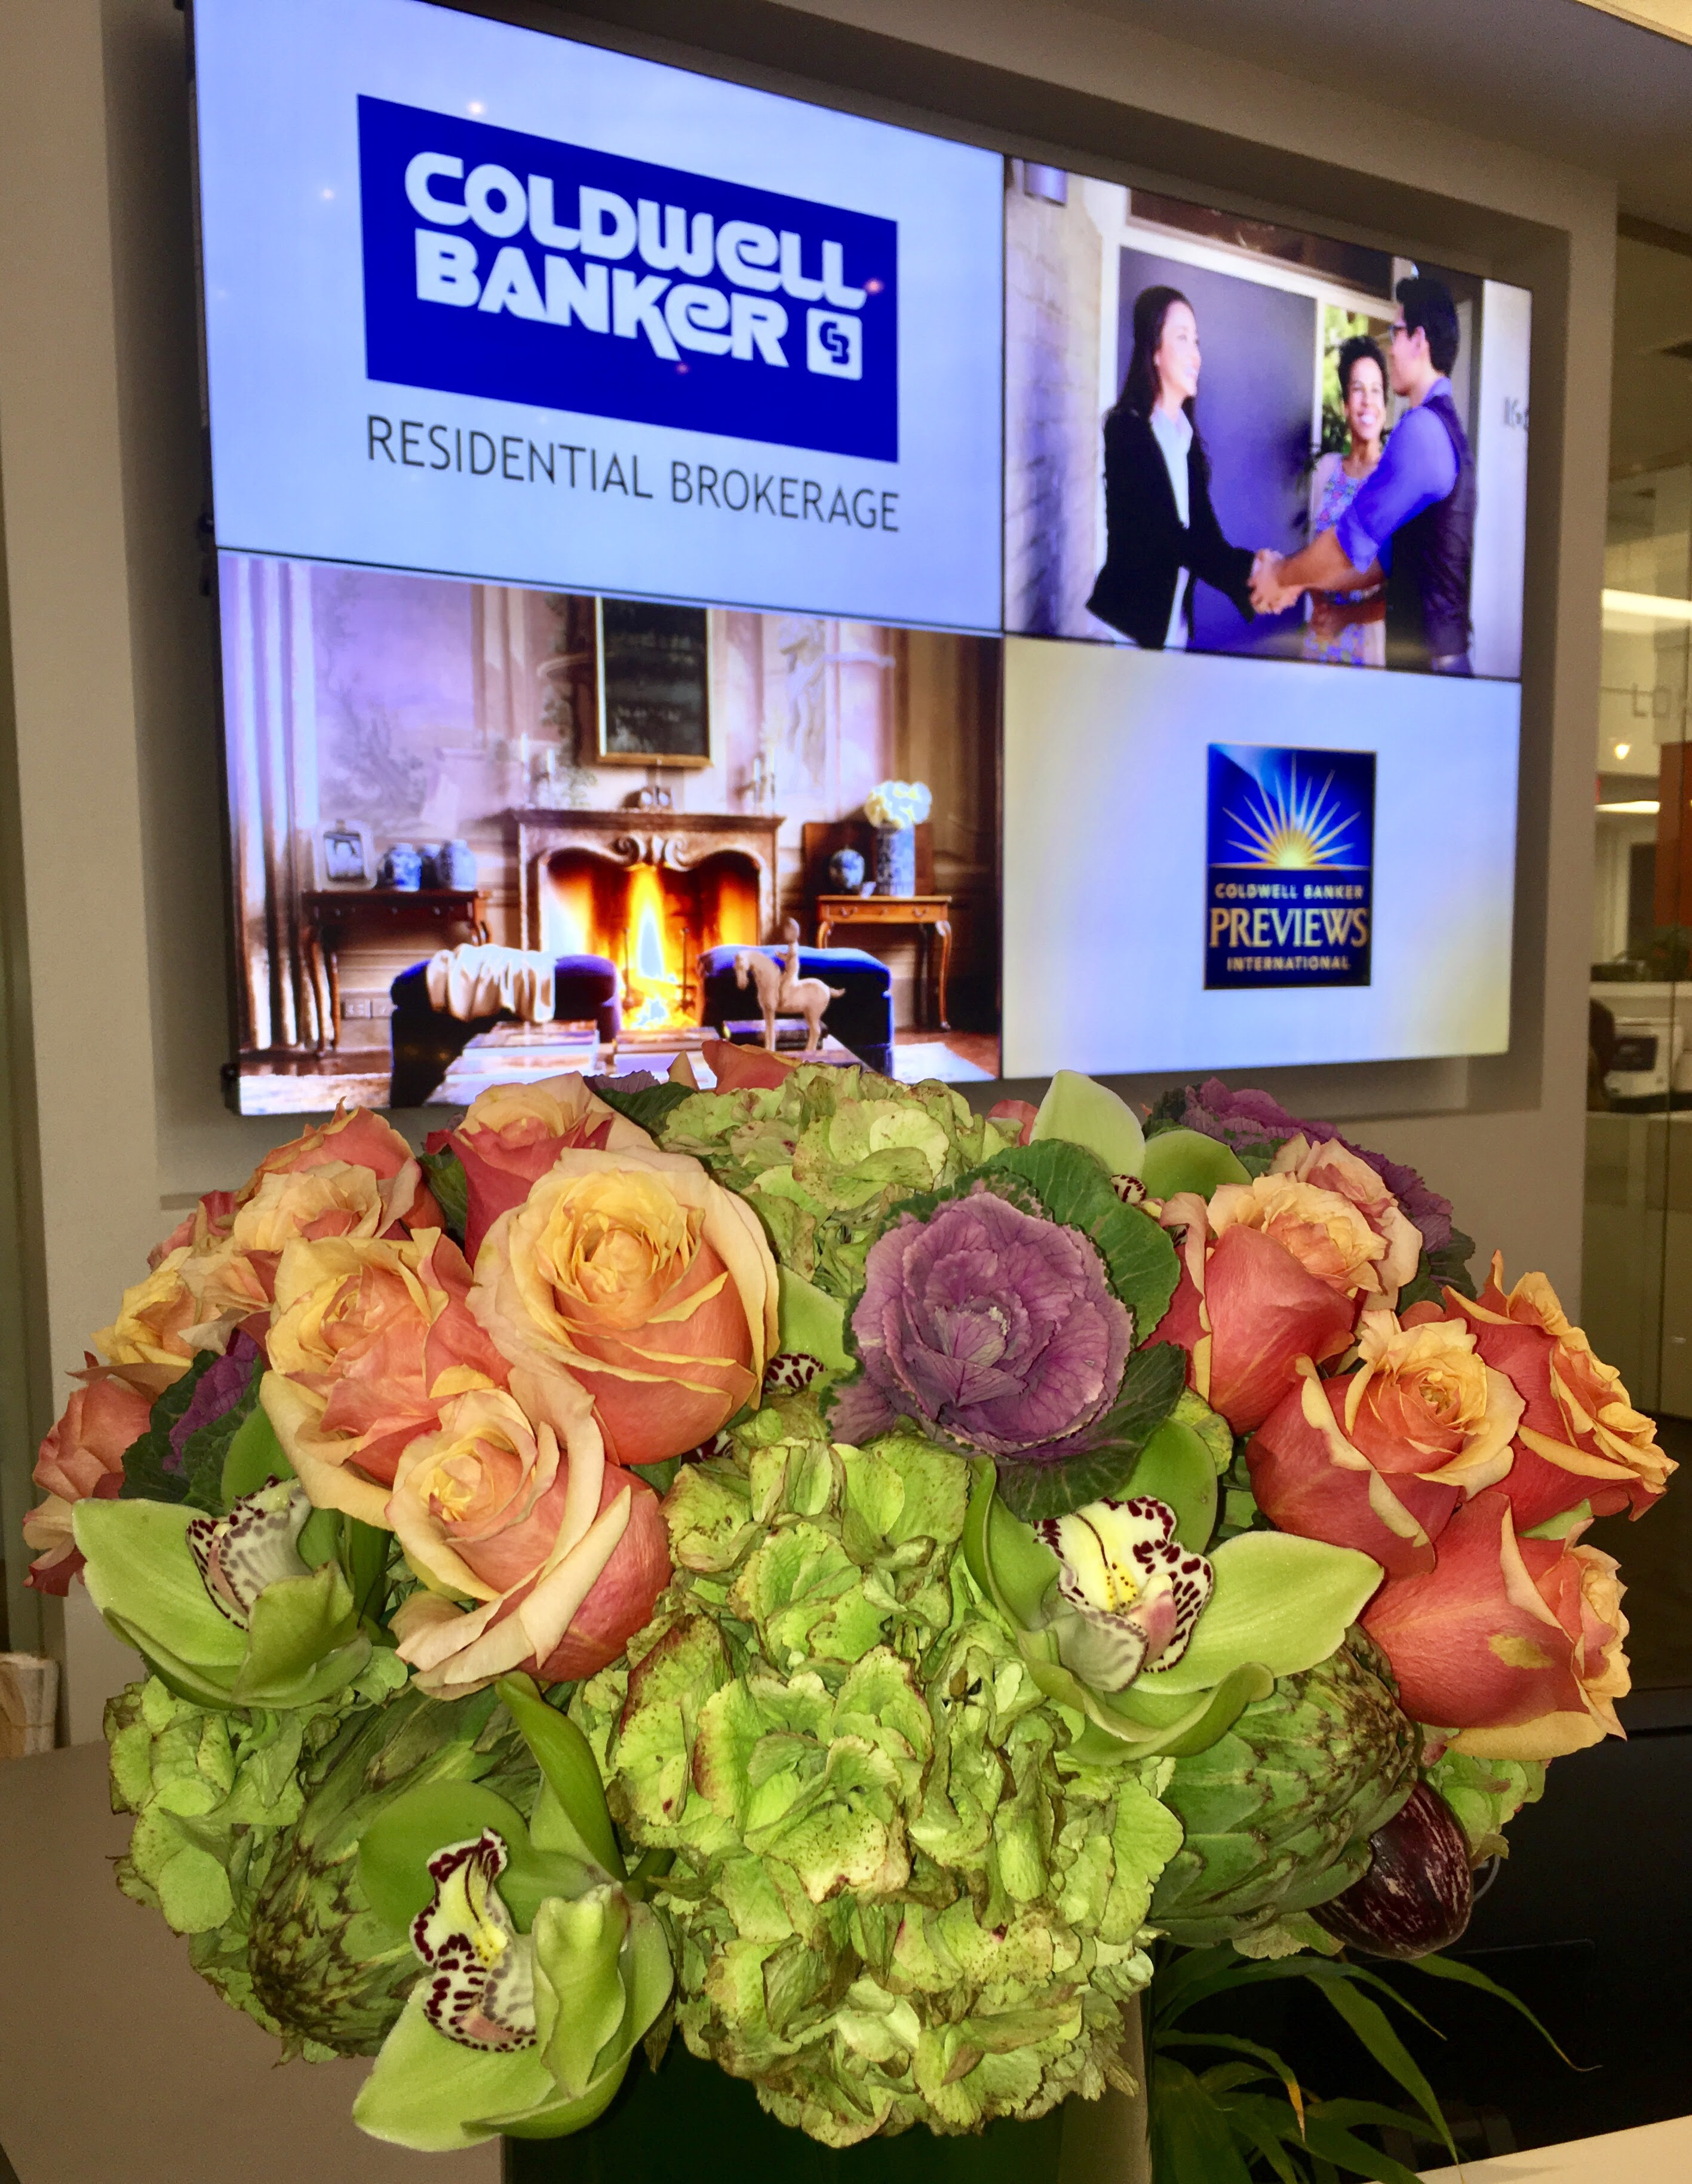 Good Morning And Happy Thanksgiving Week From Coldwell Banker